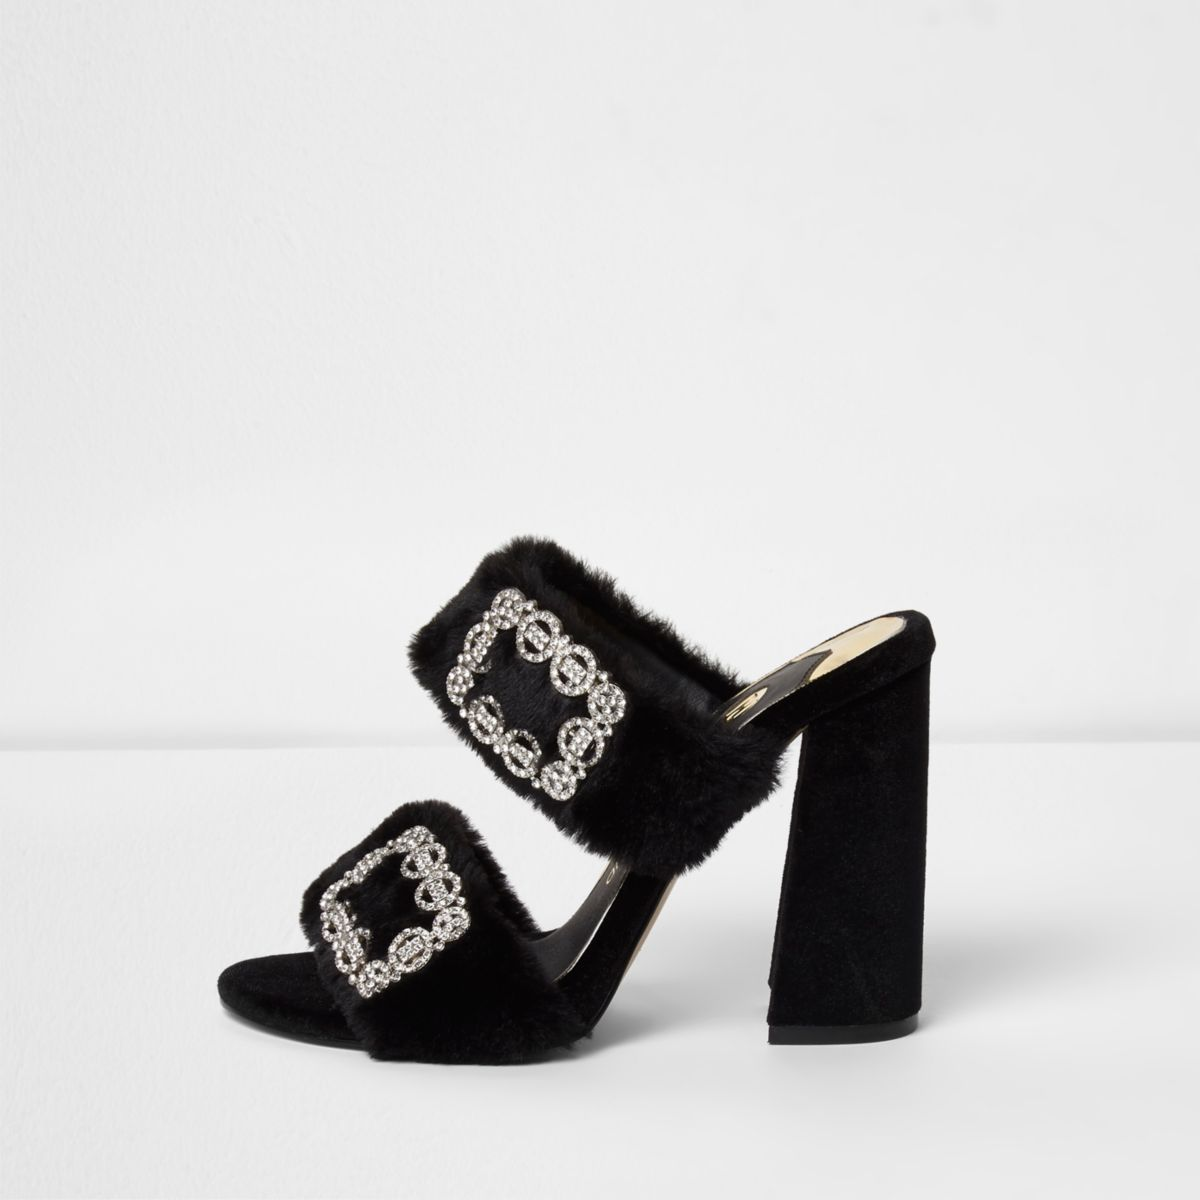 Black faux fur rhinestone buckle heeled mules